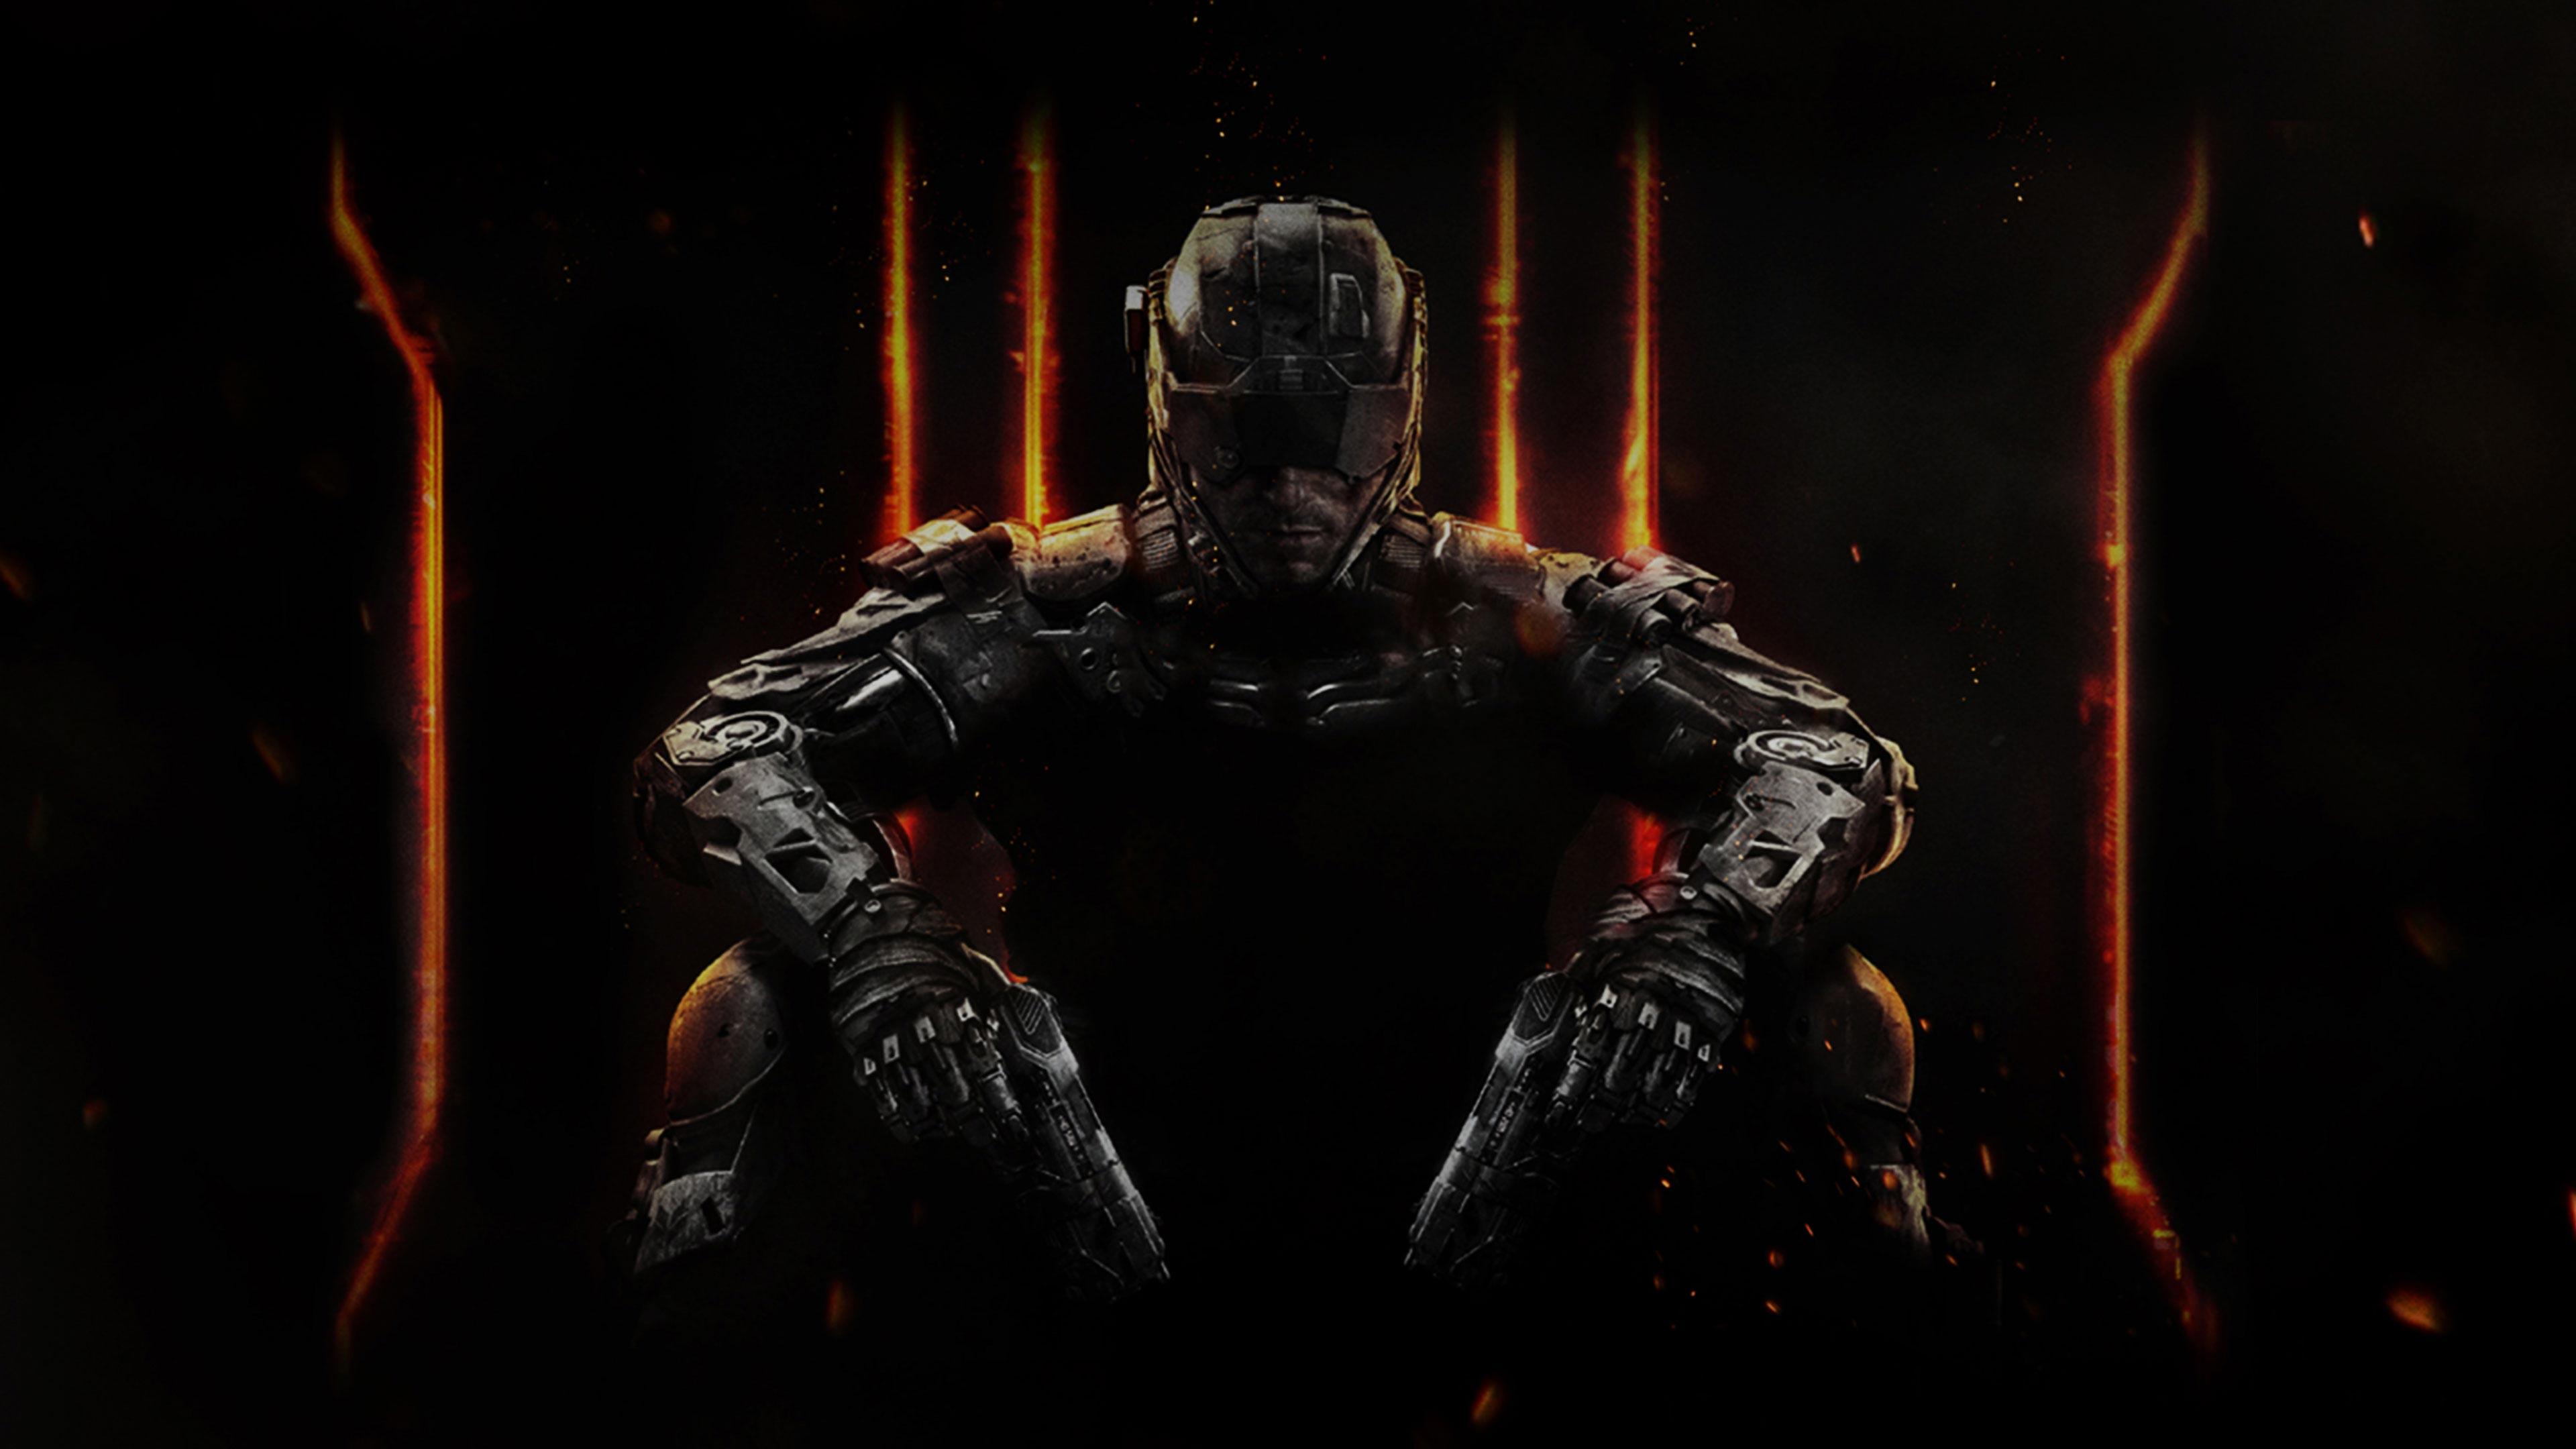 Call of Duty Black Ops 3 wallpaper 1